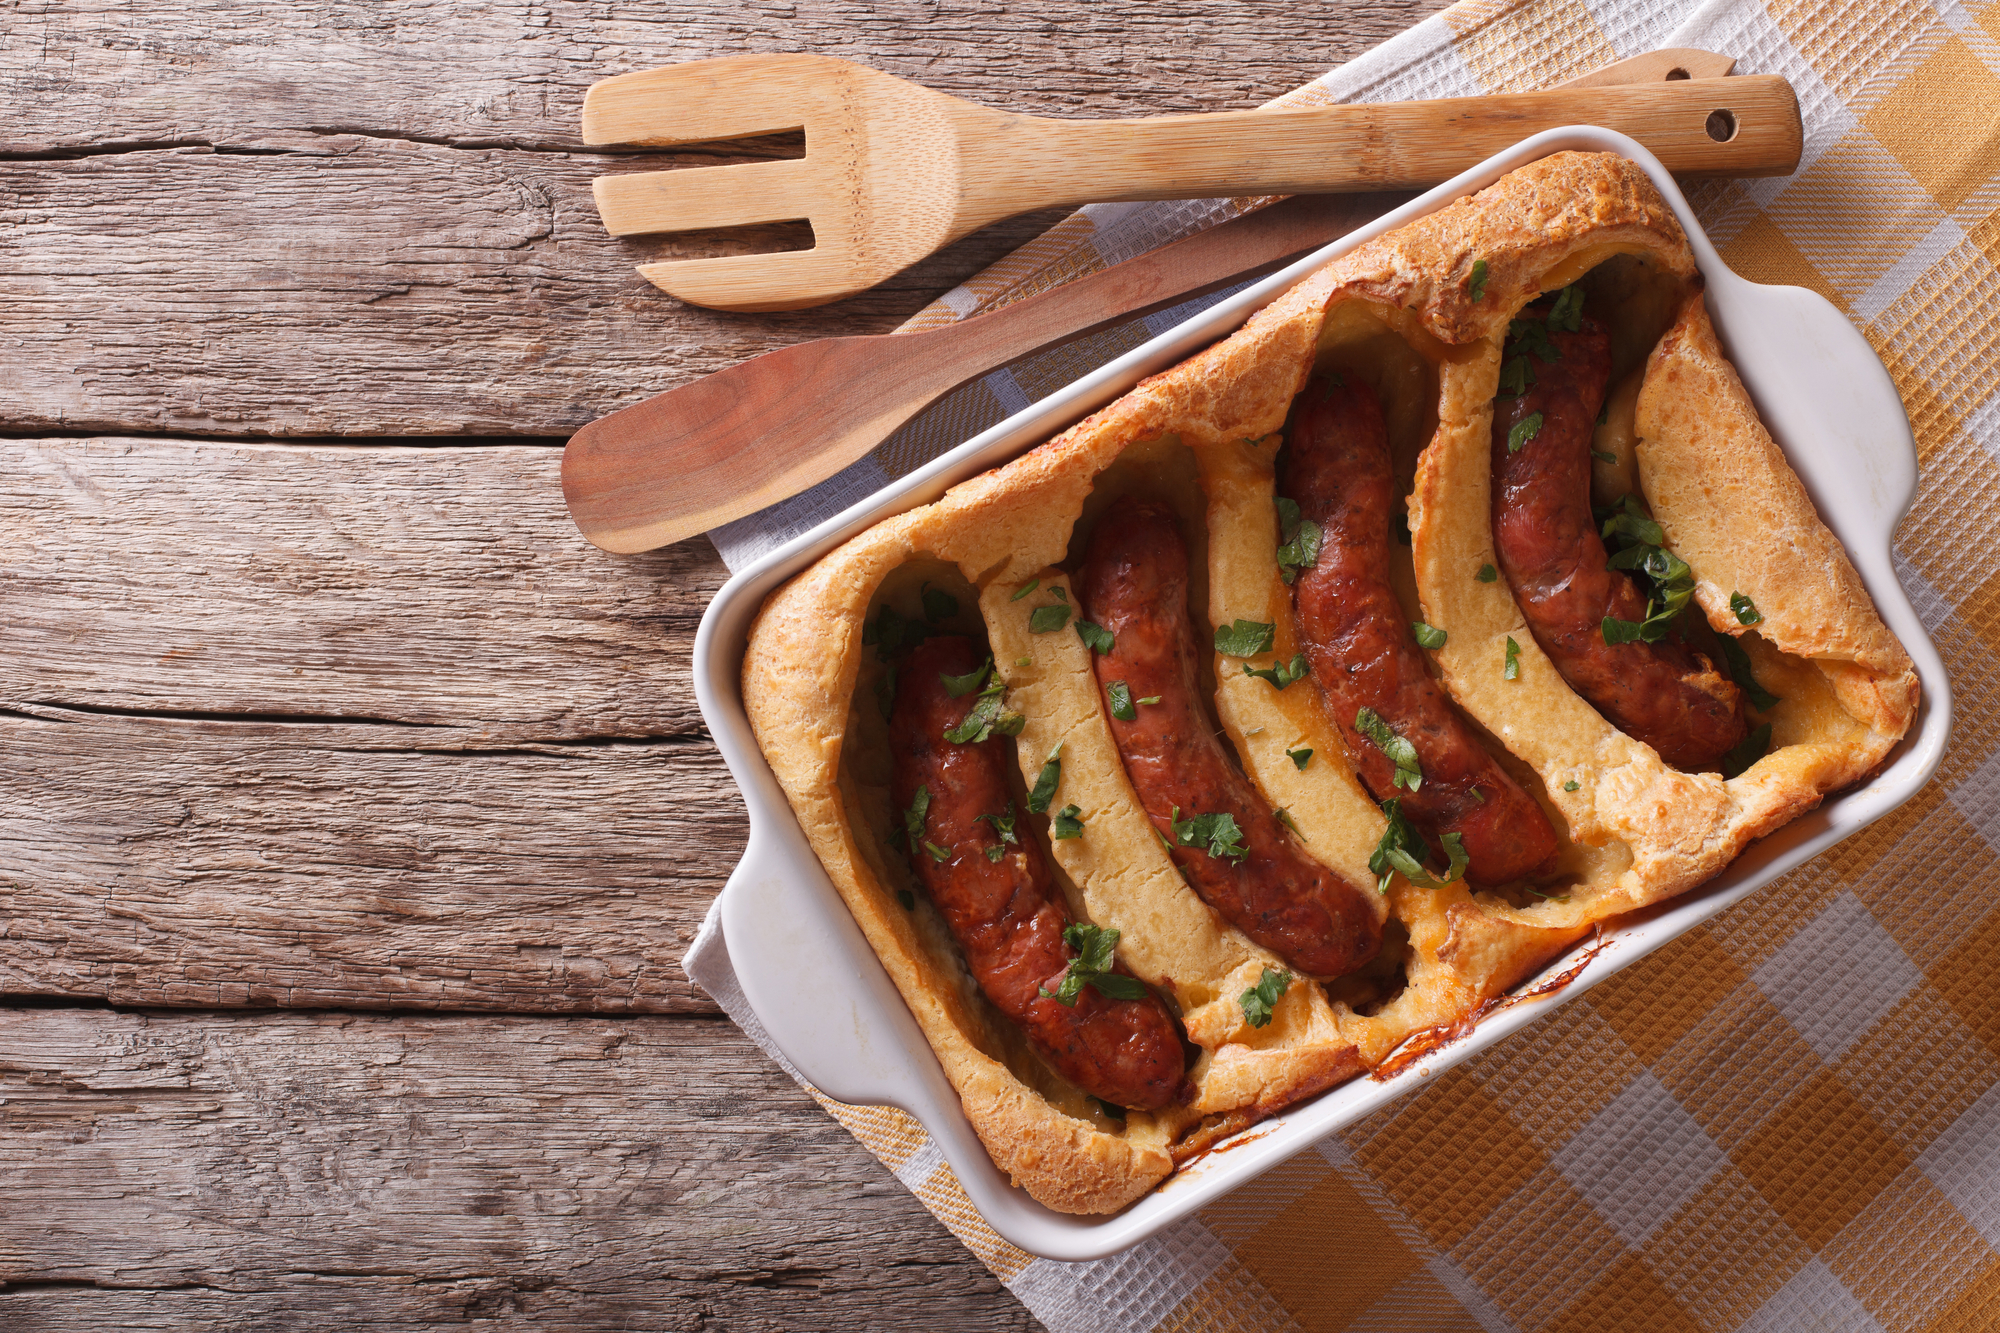 toad-in-the-hole-in-a-baking-dish